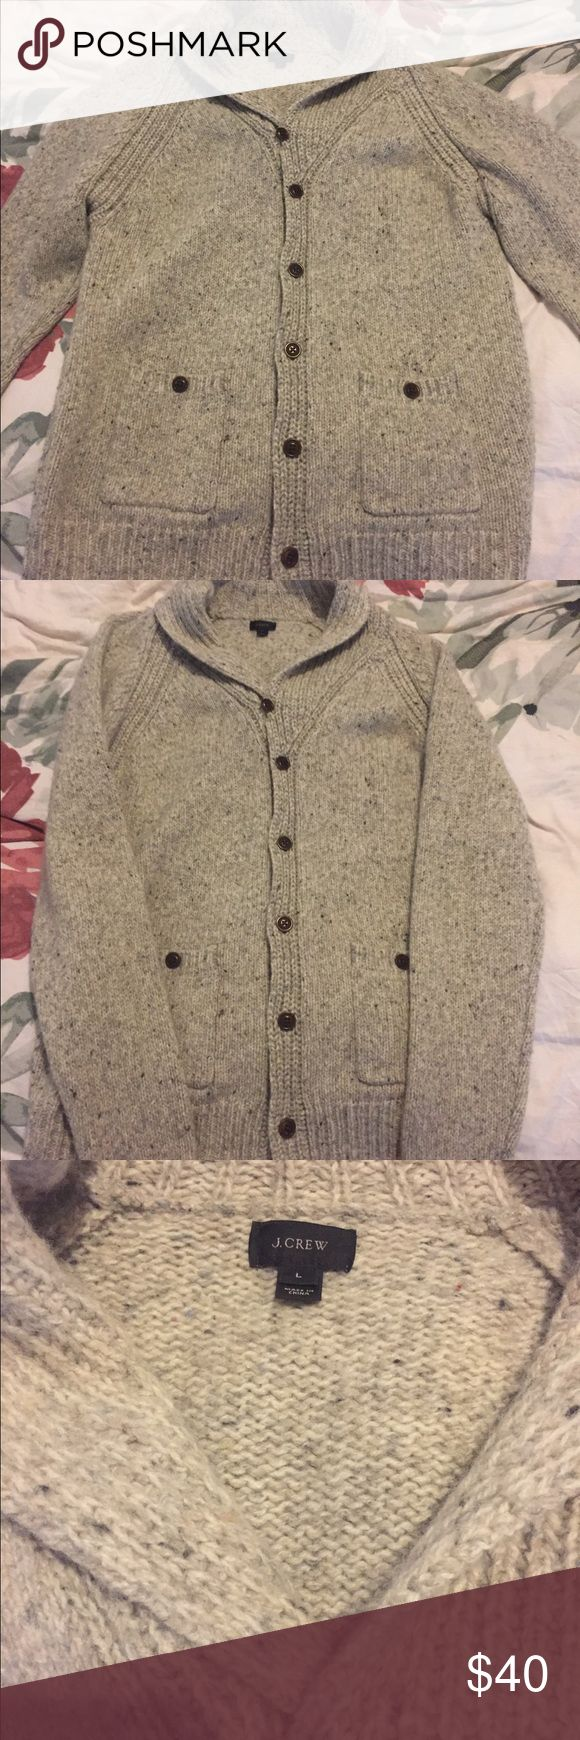 Men's JCREW Grandpa Sweater Men's Grandpa Sweater! Excellent condition! Never worn! Size large! Great for fall :) jcrew Sweaters Cardigans